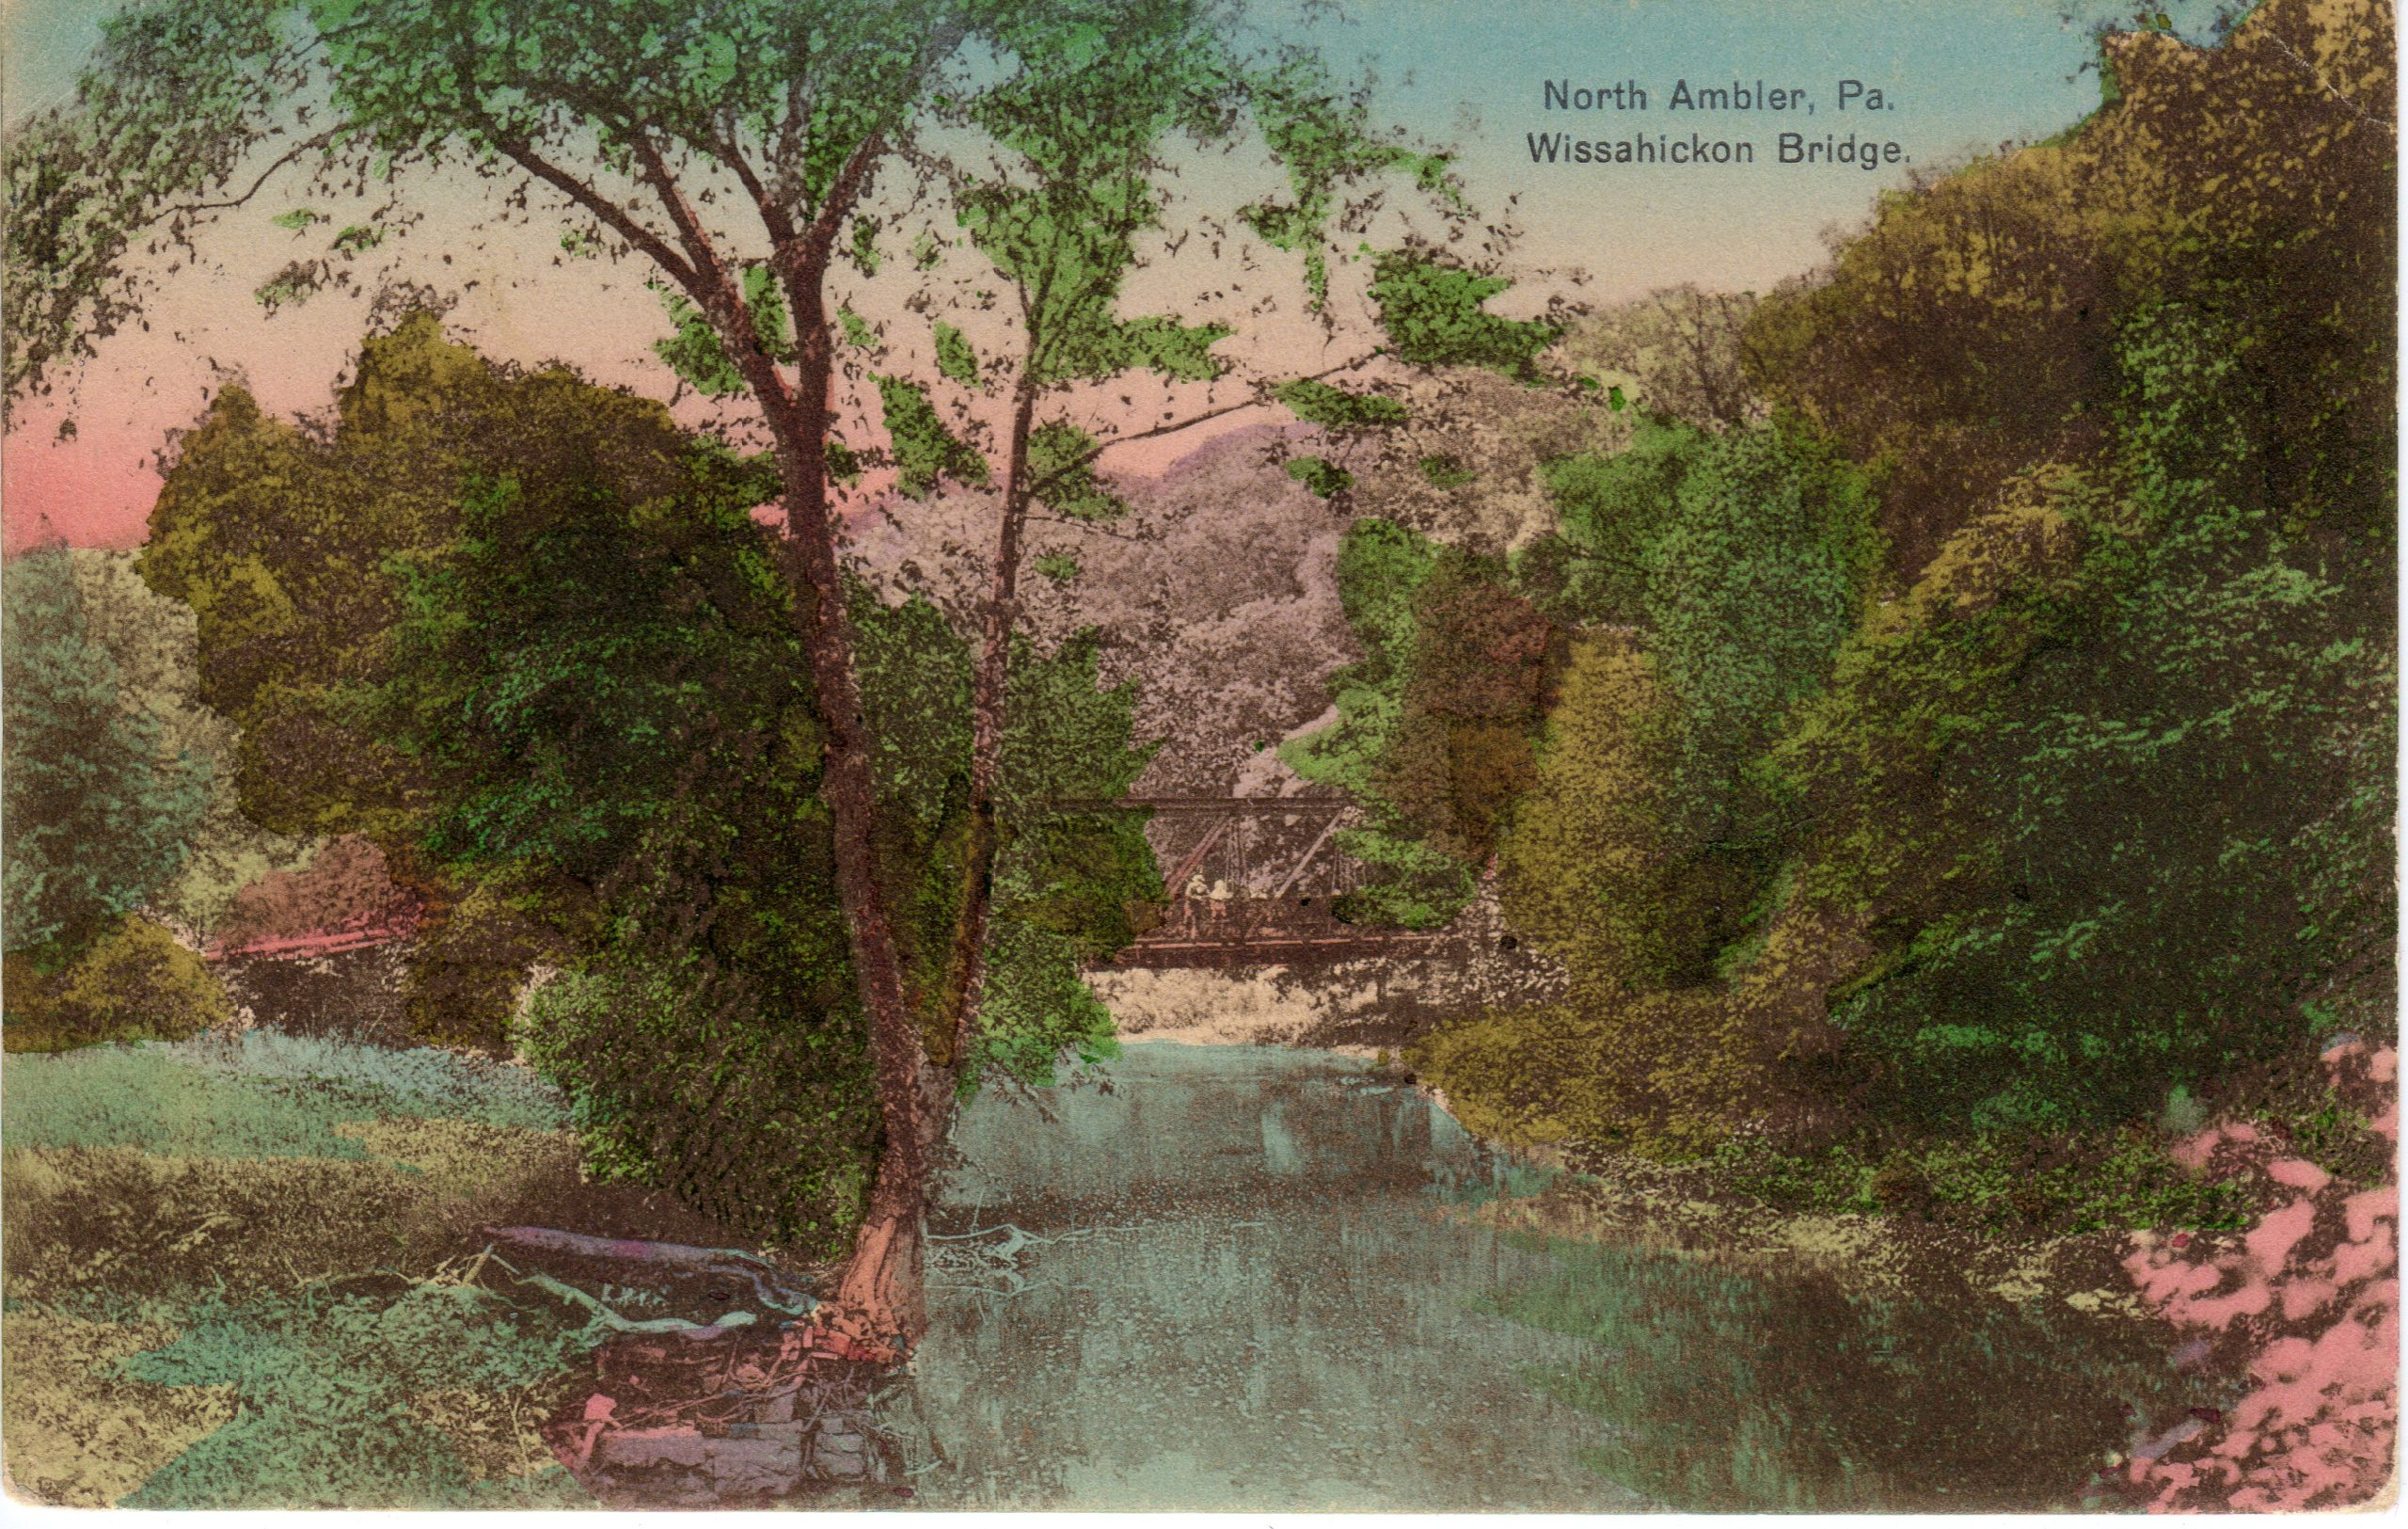 4125.41 Ambler Pa Postcard_Wissahickon Bridge North Ambler_circa 1909